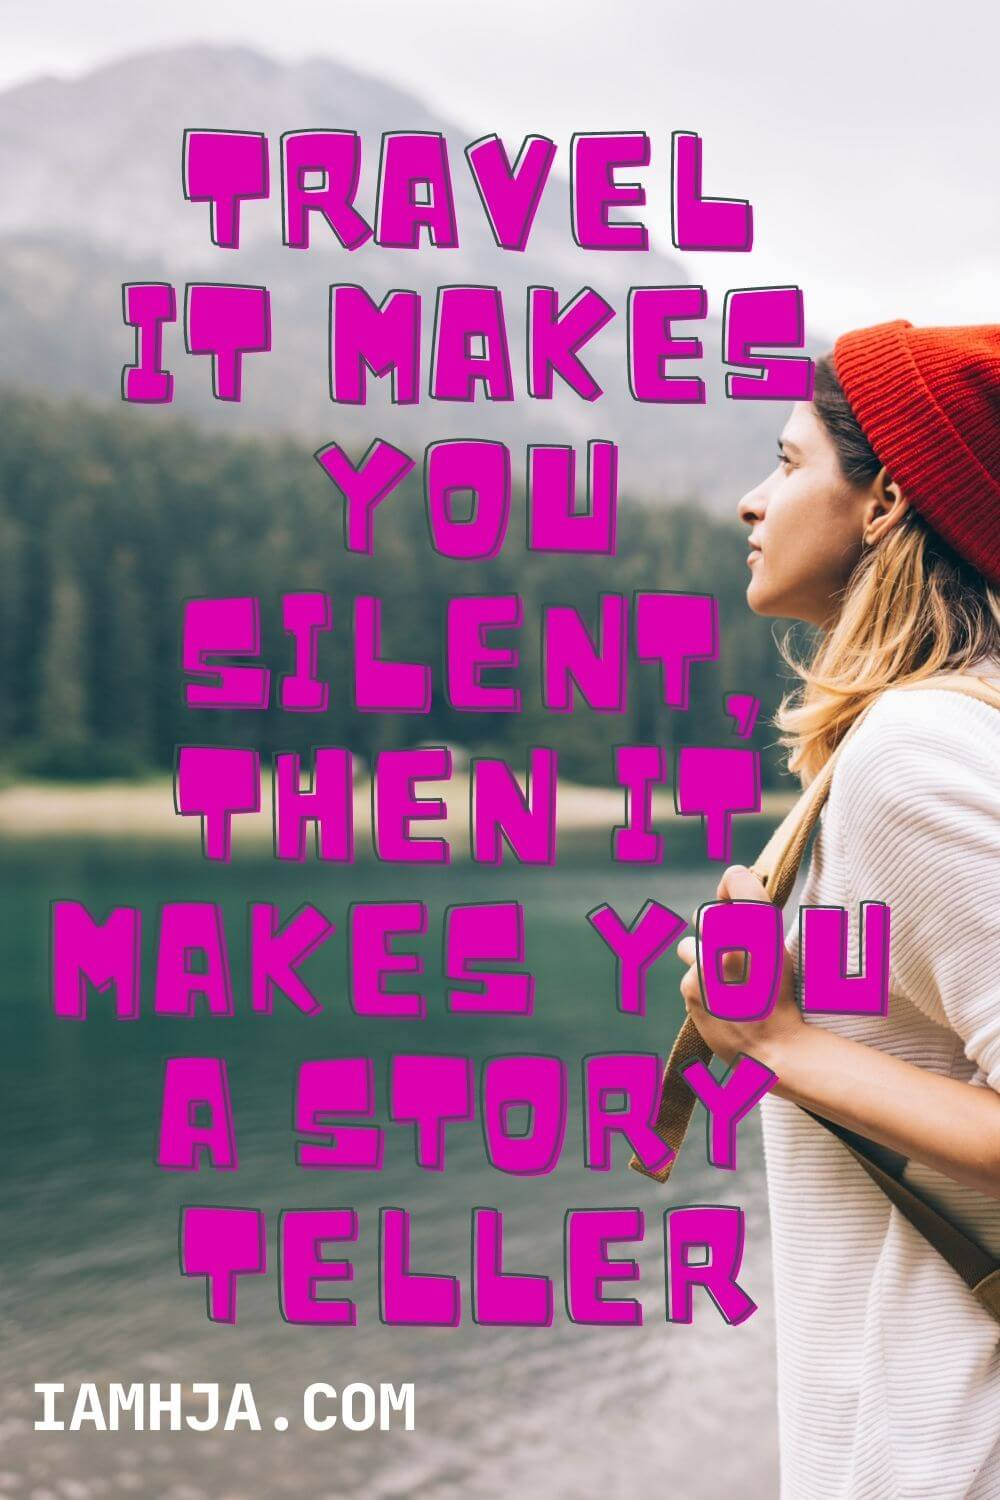 Travel It makes you silent, then it makes you a story teller